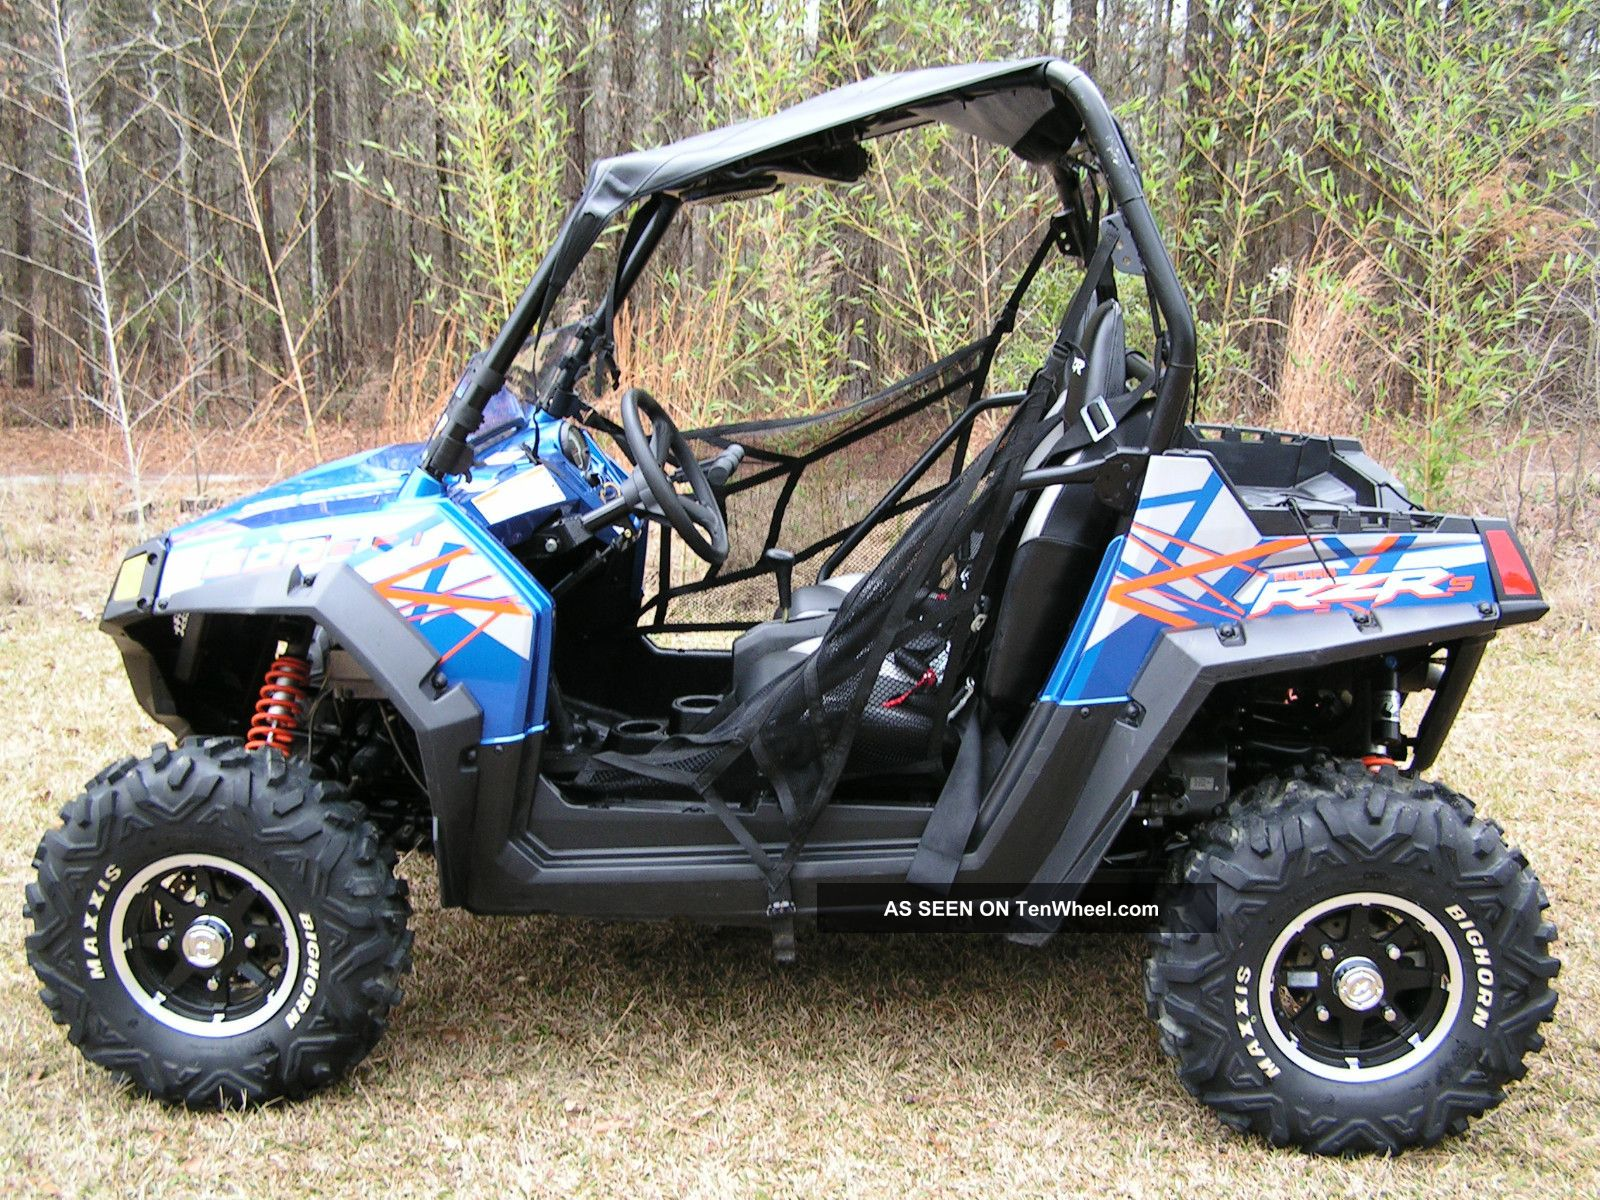 2013 polaris rzr 800 s limited edition high output. Black Bedroom Furniture Sets. Home Design Ideas